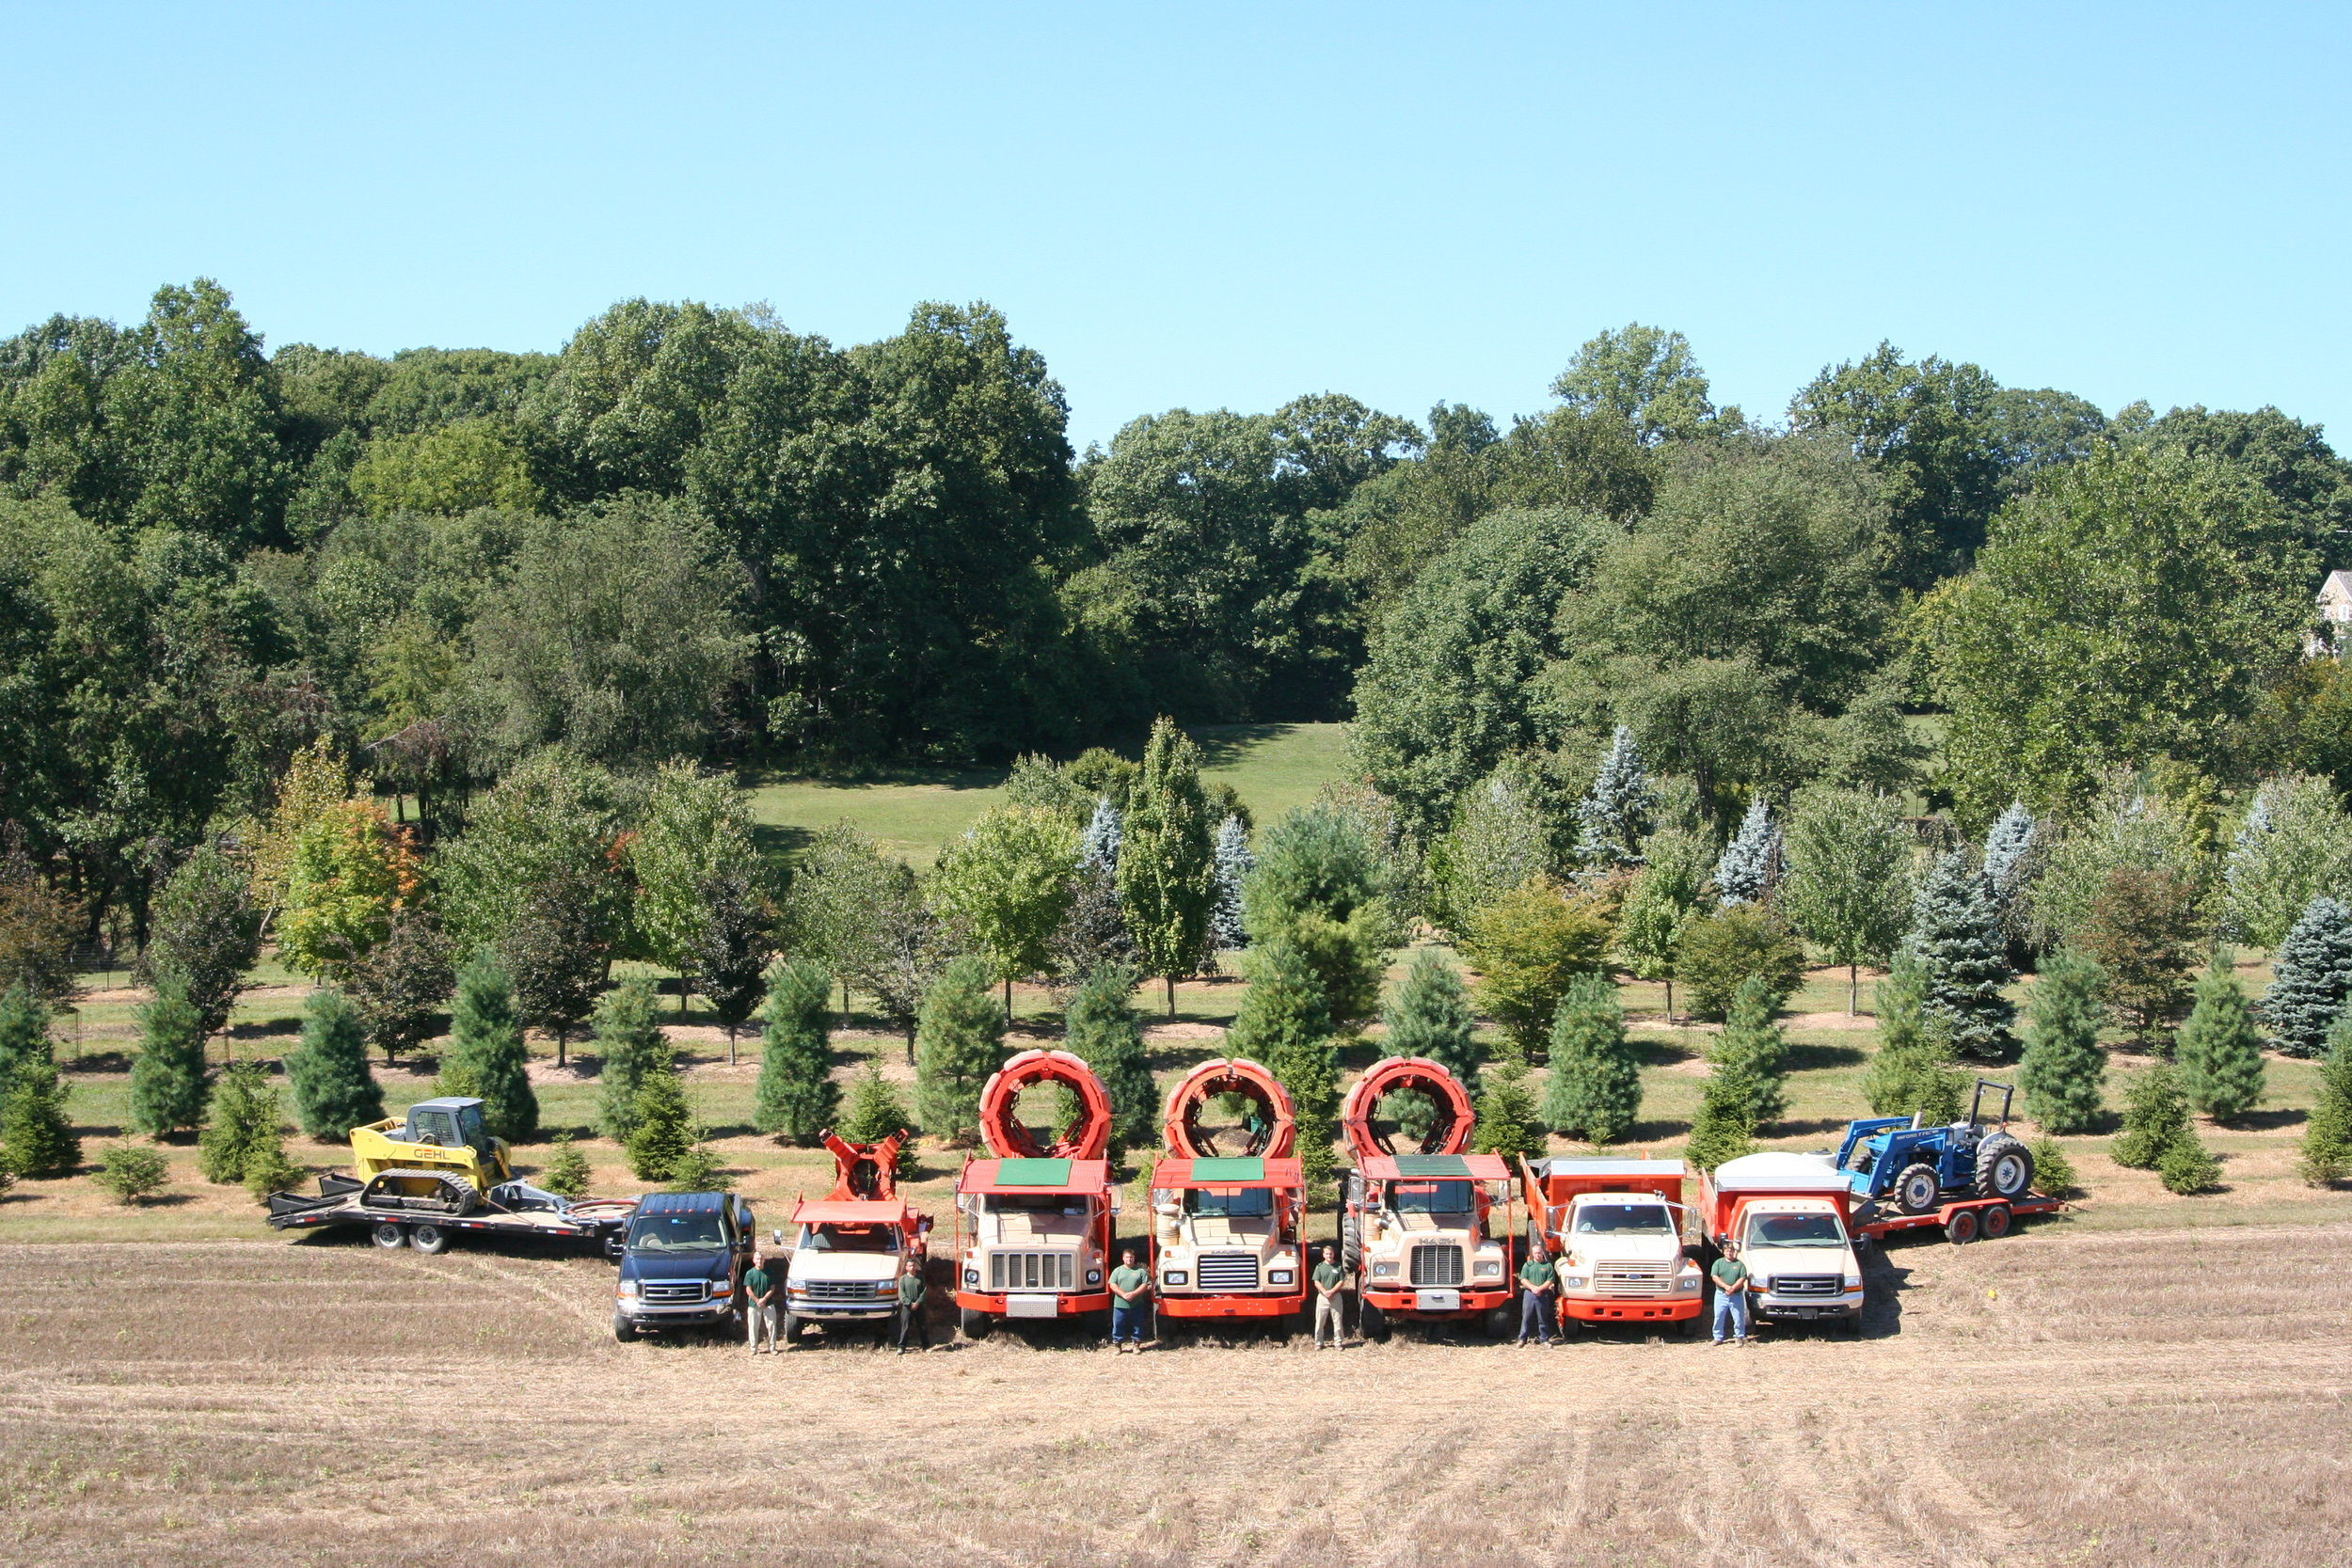 American Treescapes: Our Fleet - Our mechanical spades can move trees up to 14